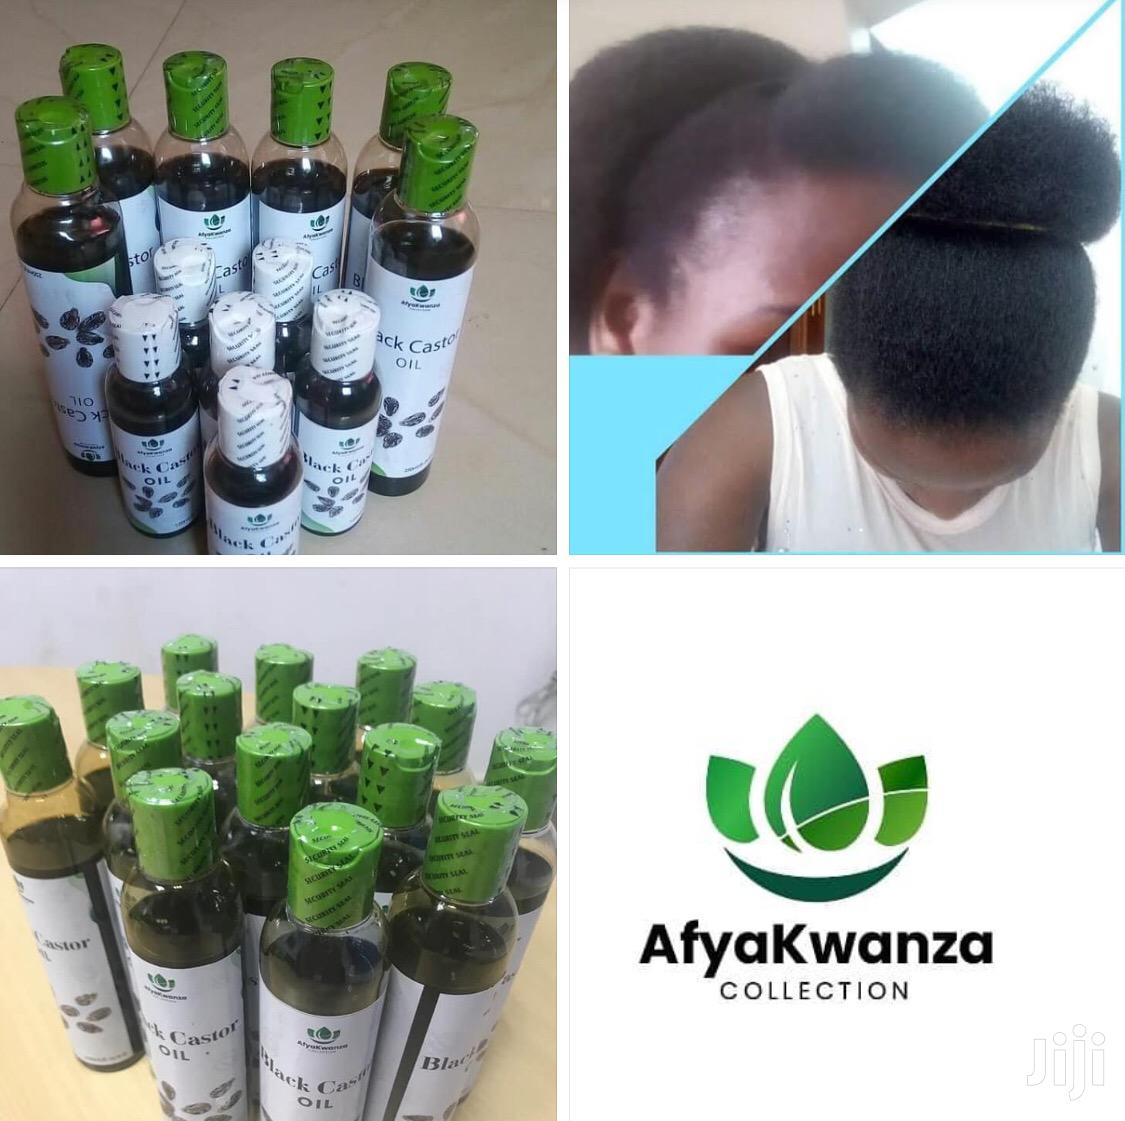 Archive: Afyakwanza Black Castor Oil